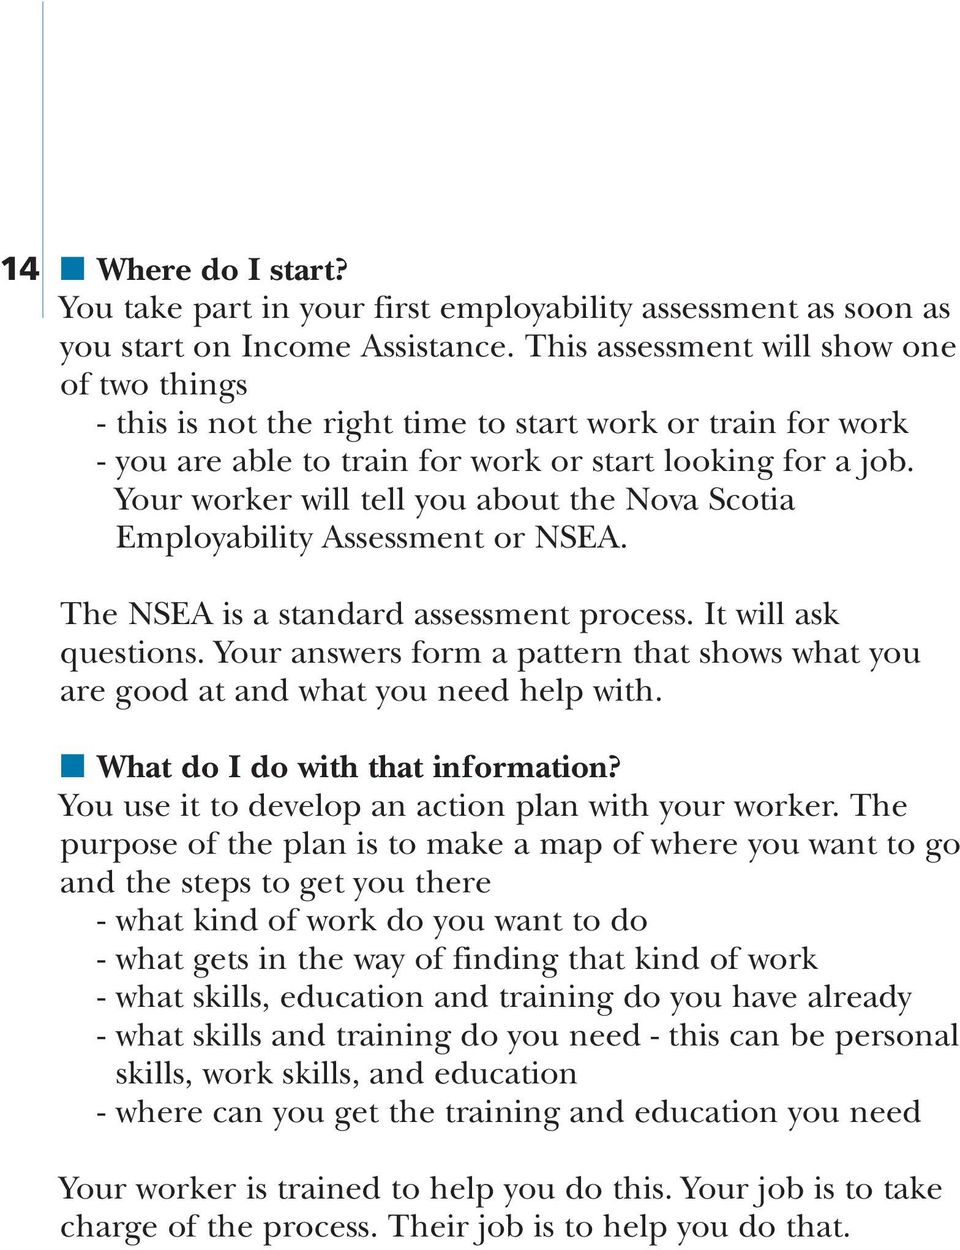 Your worker will tell you about the Nova Scotia Employability Assessment or NSEA. The NSEA is a standard assessment process. It will ask questions.